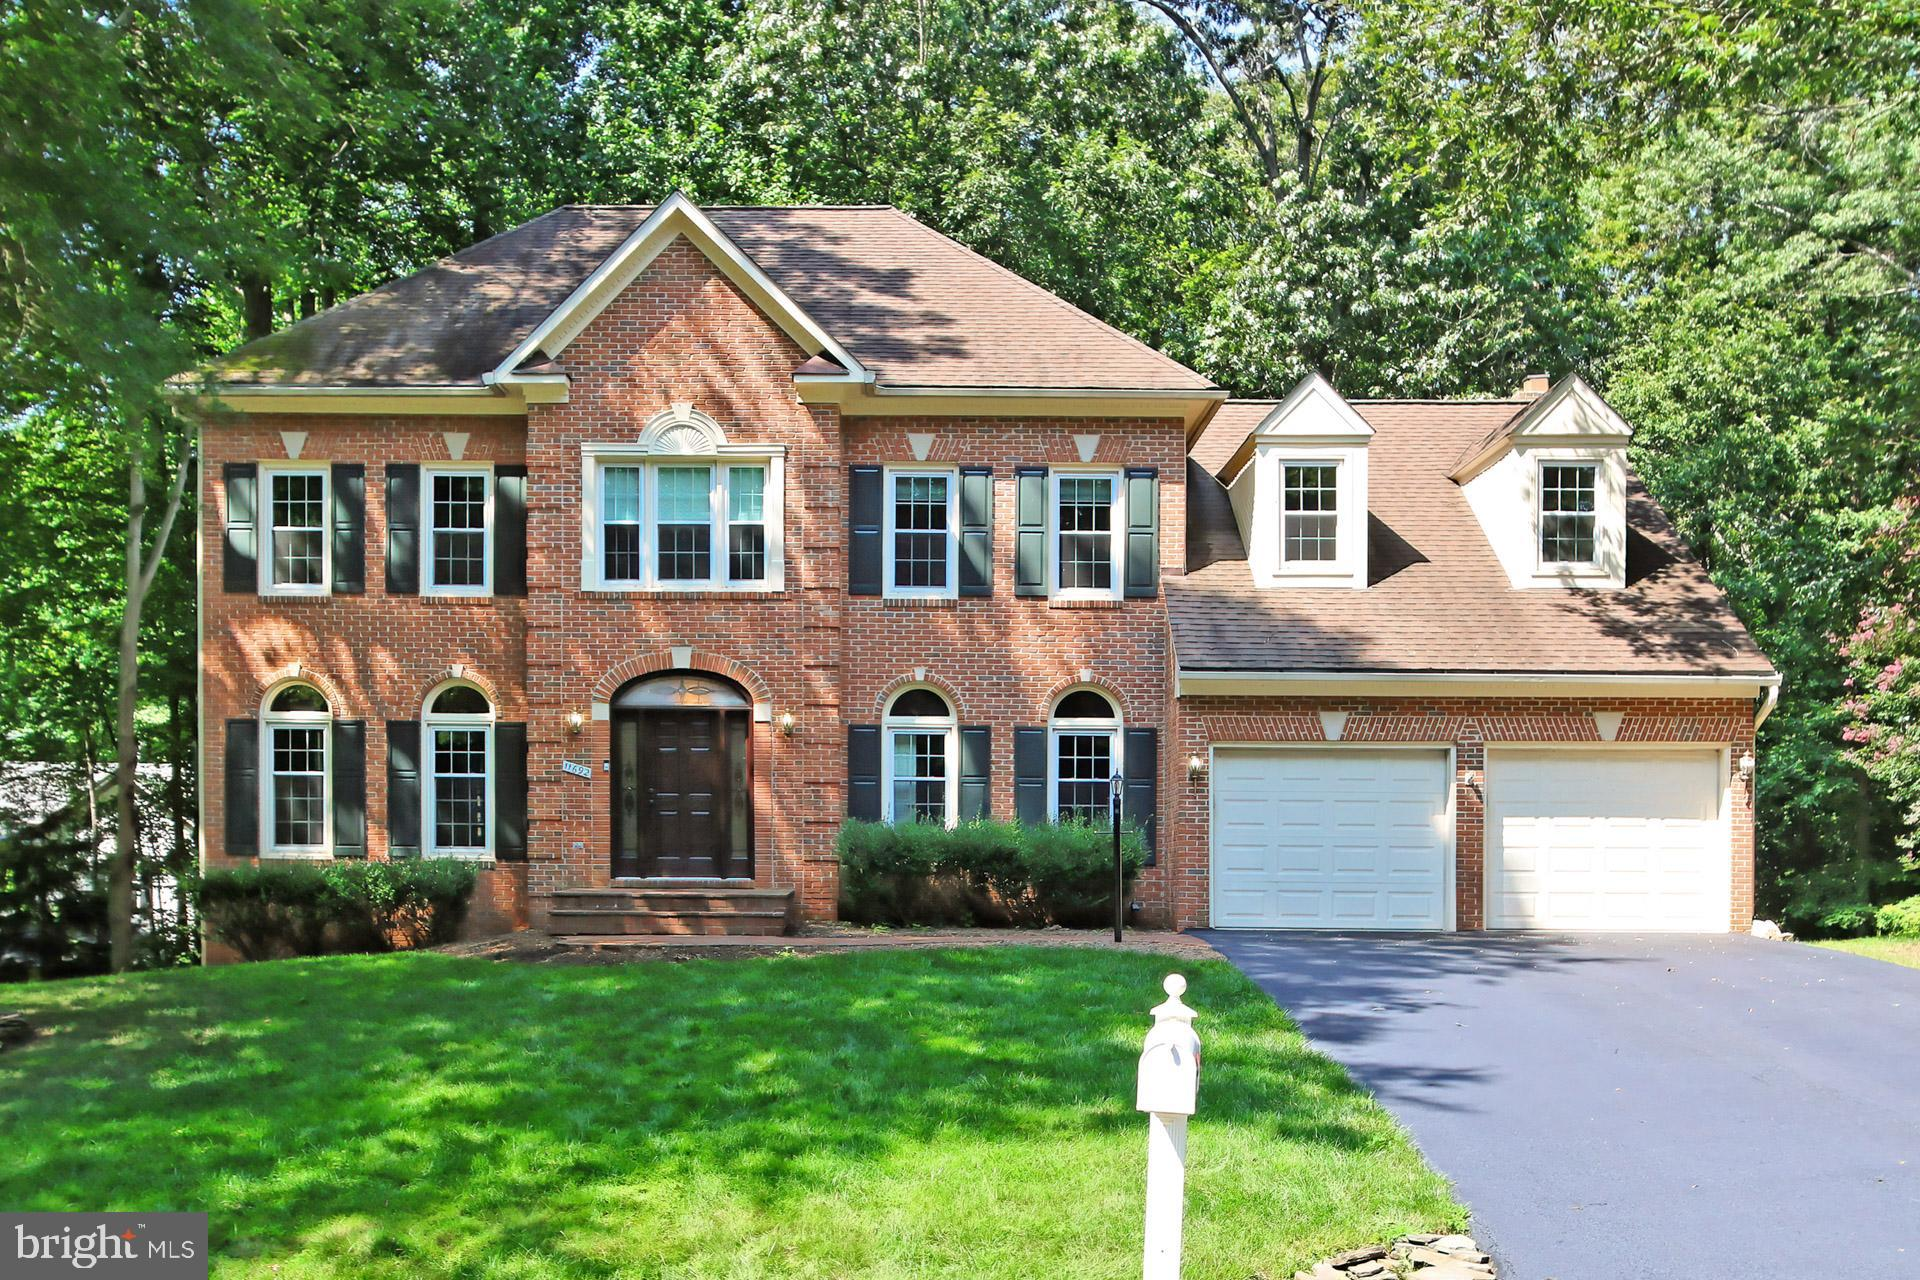 Welcome to 11692 Sandal Wood Lane in Manassas, Virginia!Lovingly nestled amongst the trees on a serene 2.19 acre lot in the Riverview Estates neighborhood, this 5 bedroom, 4.5 bath Colonial home features a stately brick façade, 2-car garage, 2-level deck, paver patio, and an abundance of windows uniting indoor and outdoor living. On trend neutral paint, hardwood floors, large room sizes, decorative moldings, fireplace, and an updated kitchen are only some of the fine details that make this home so appealing. This secluded retreat makes you feel many miles away from the hustle and bustle of Northern Virginia yet is centrally located to Route 234, the Prince William Parkway, VRE, and diverse shopping, dining, and entertainment choices in every direction. Everyone will enjoy the nature trails, serene tranquility, and planned neighborhood activities or take a short drive and visit Northern Virginia's best kept secret—Prince William Forest Park offering 15,000 acres of woods, streams, fragile ecosystems, and endless activities for nature lovers. For a home that offers a convenience in commute and, at the end of the day, a serene place to come home to and enjoy, you've found it. Welcome home!